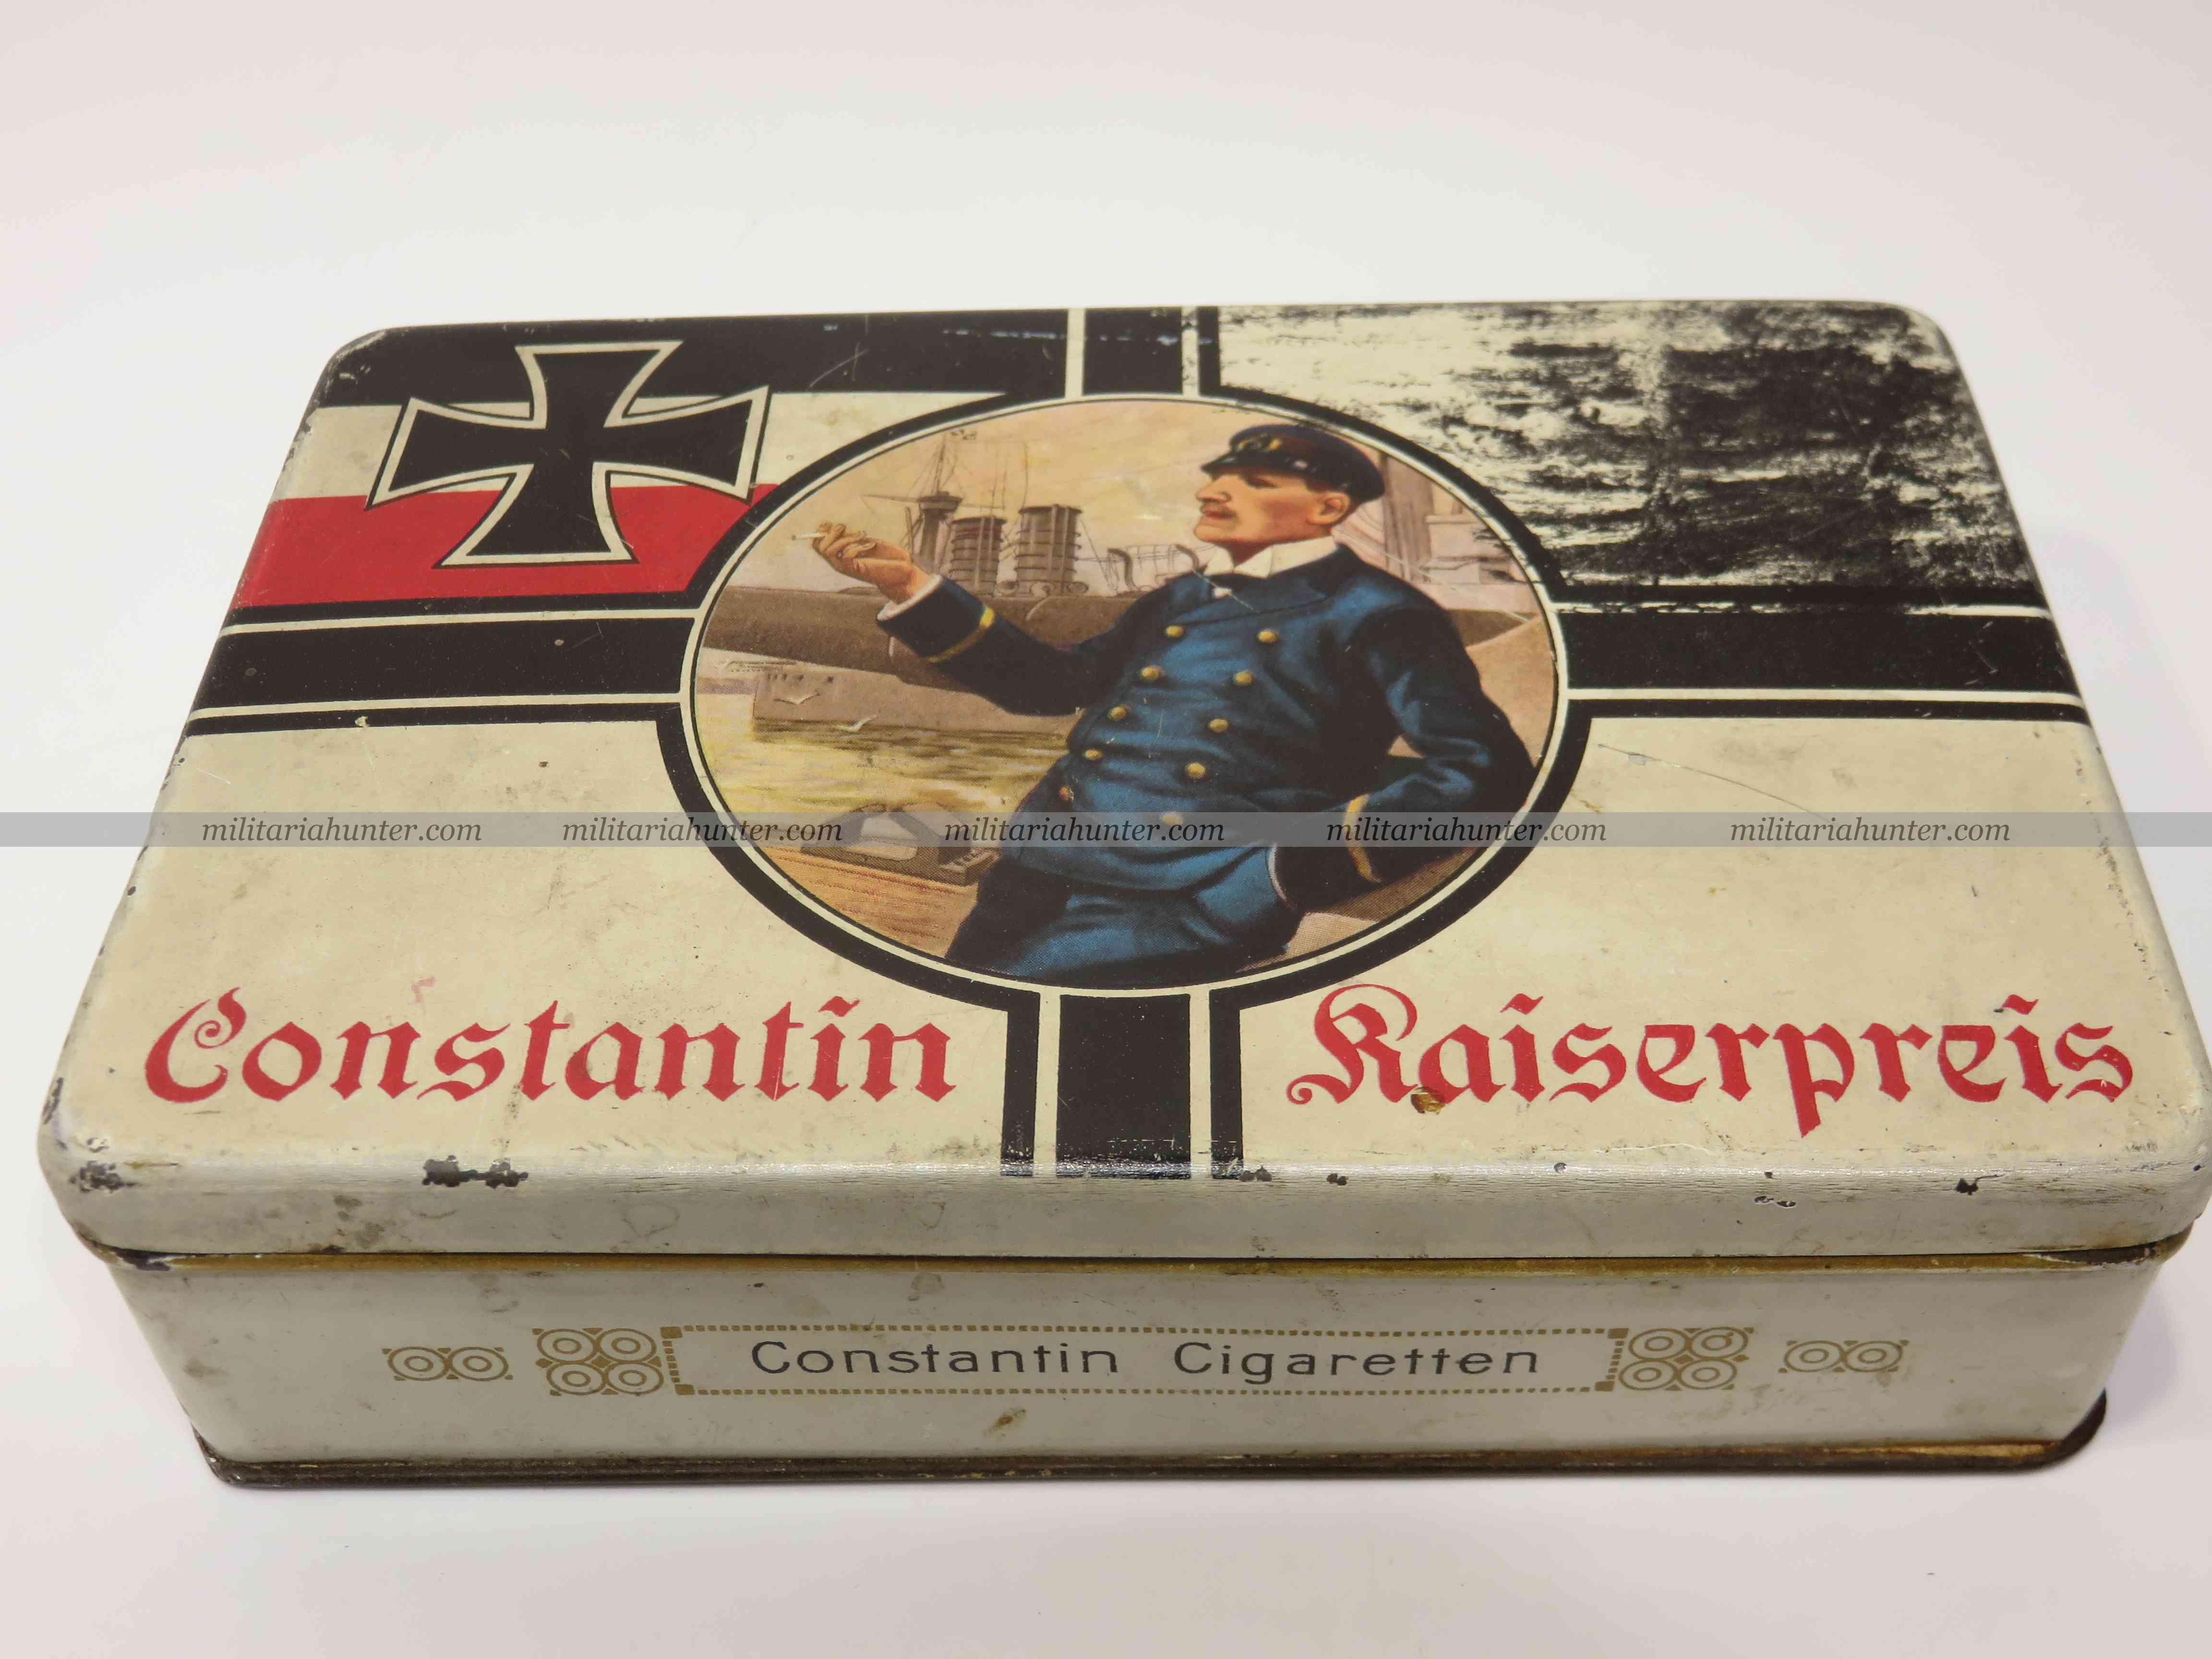 militaria : ww1 german CONSTANTIN cigarettes box - boîte de cigarettes Constantion